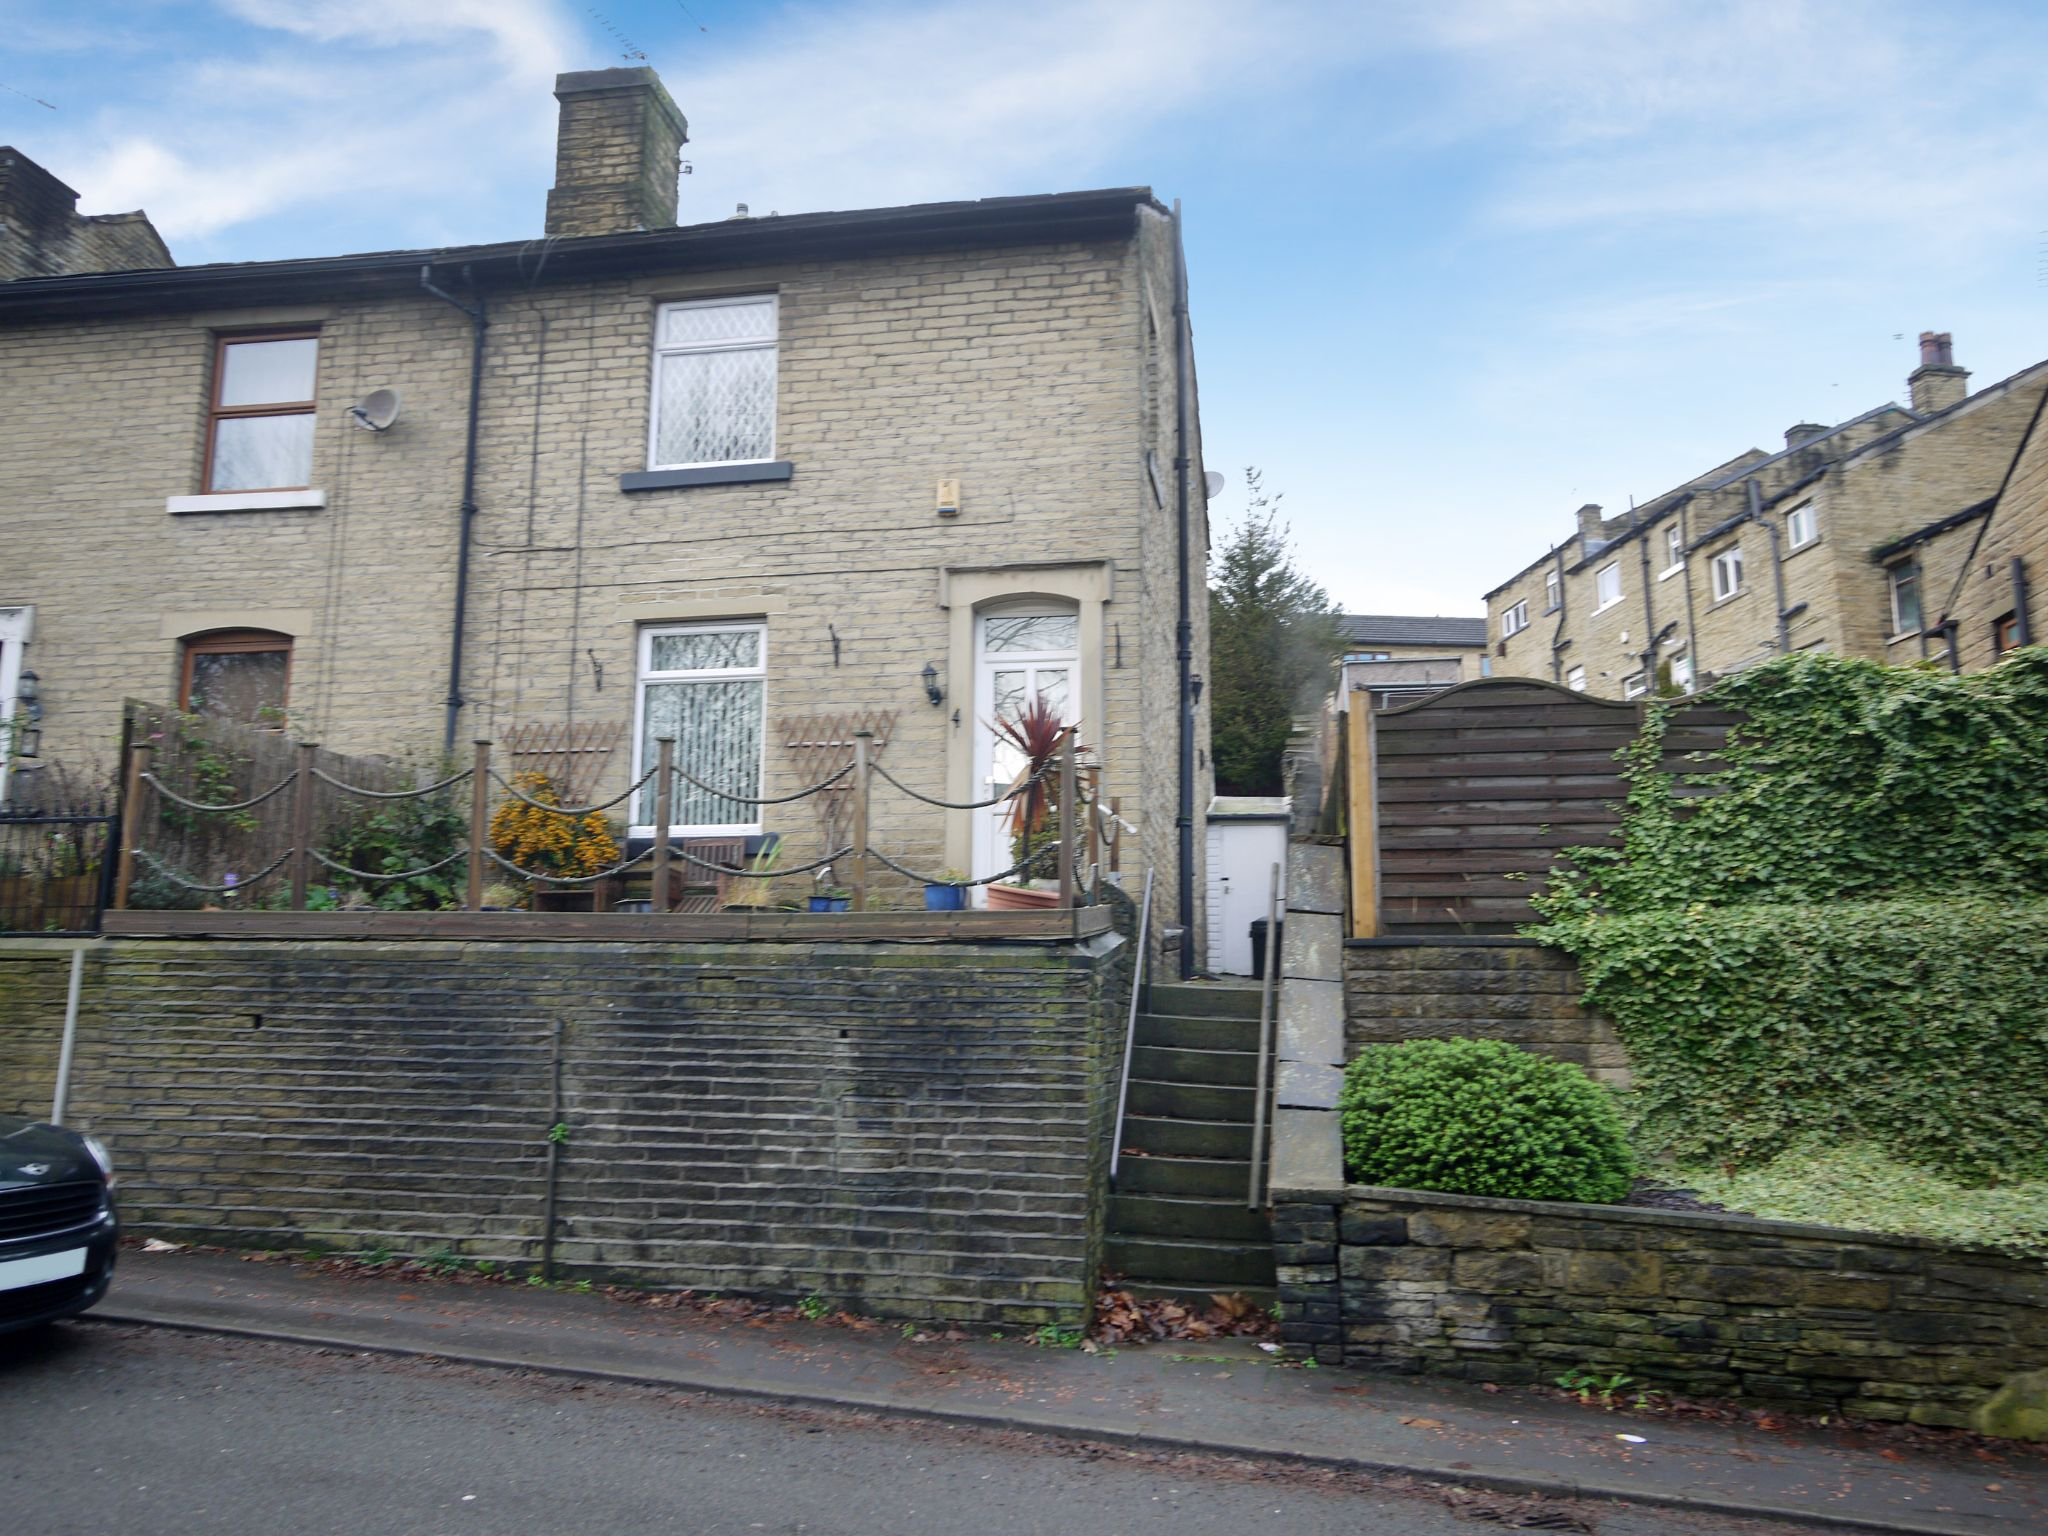 3 bedroom semi-detached house For Sale in Calderdale - Photograph 2.